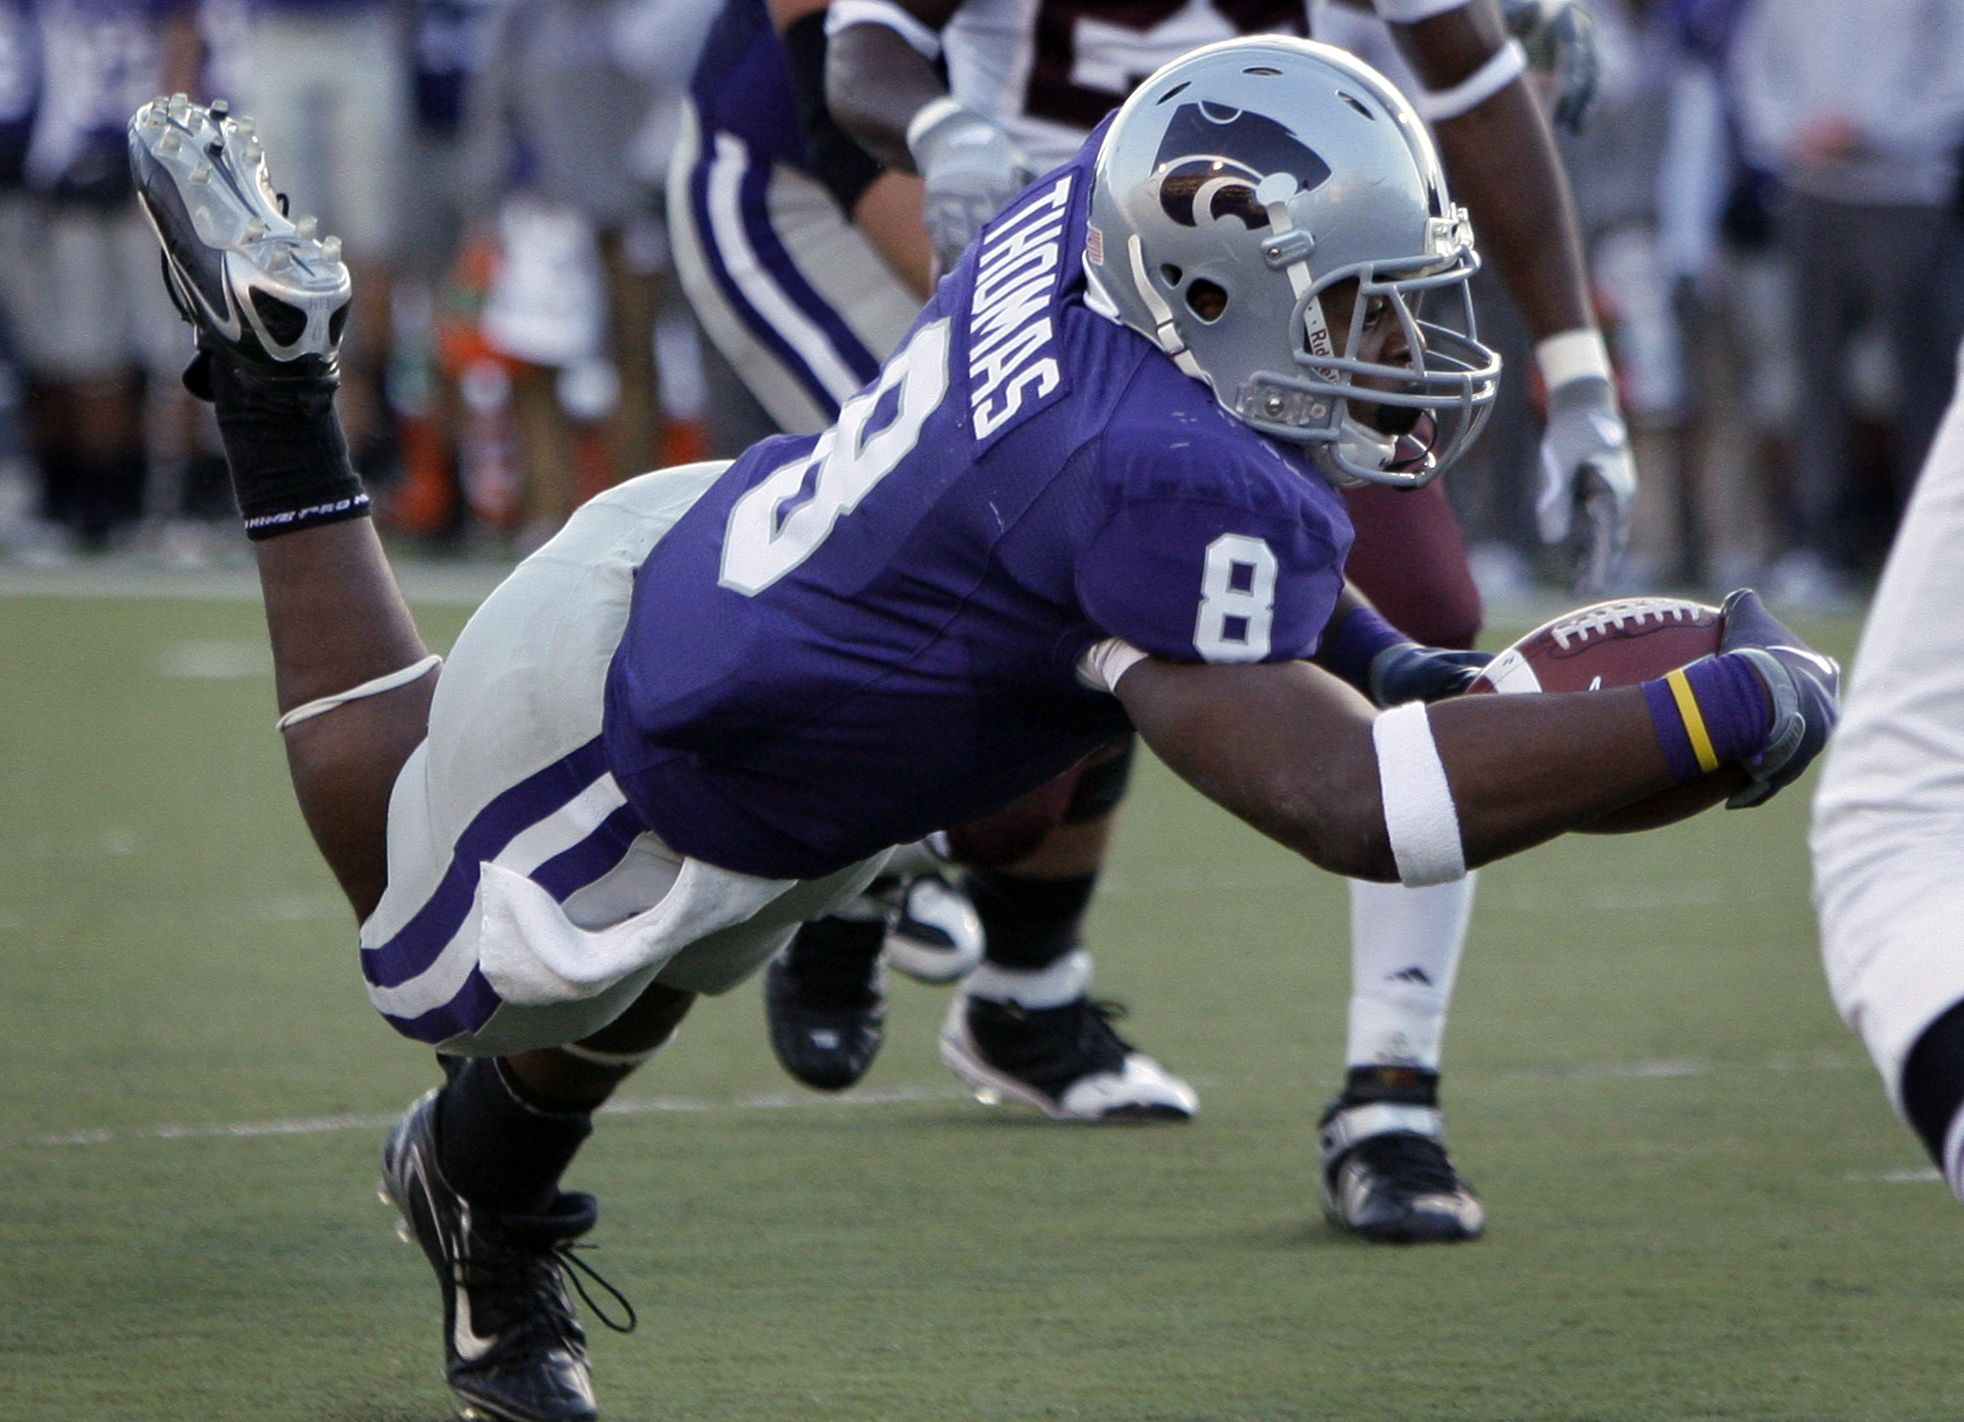 Surplus Of Big 12 Surprises In Week 7 Conference Chatter